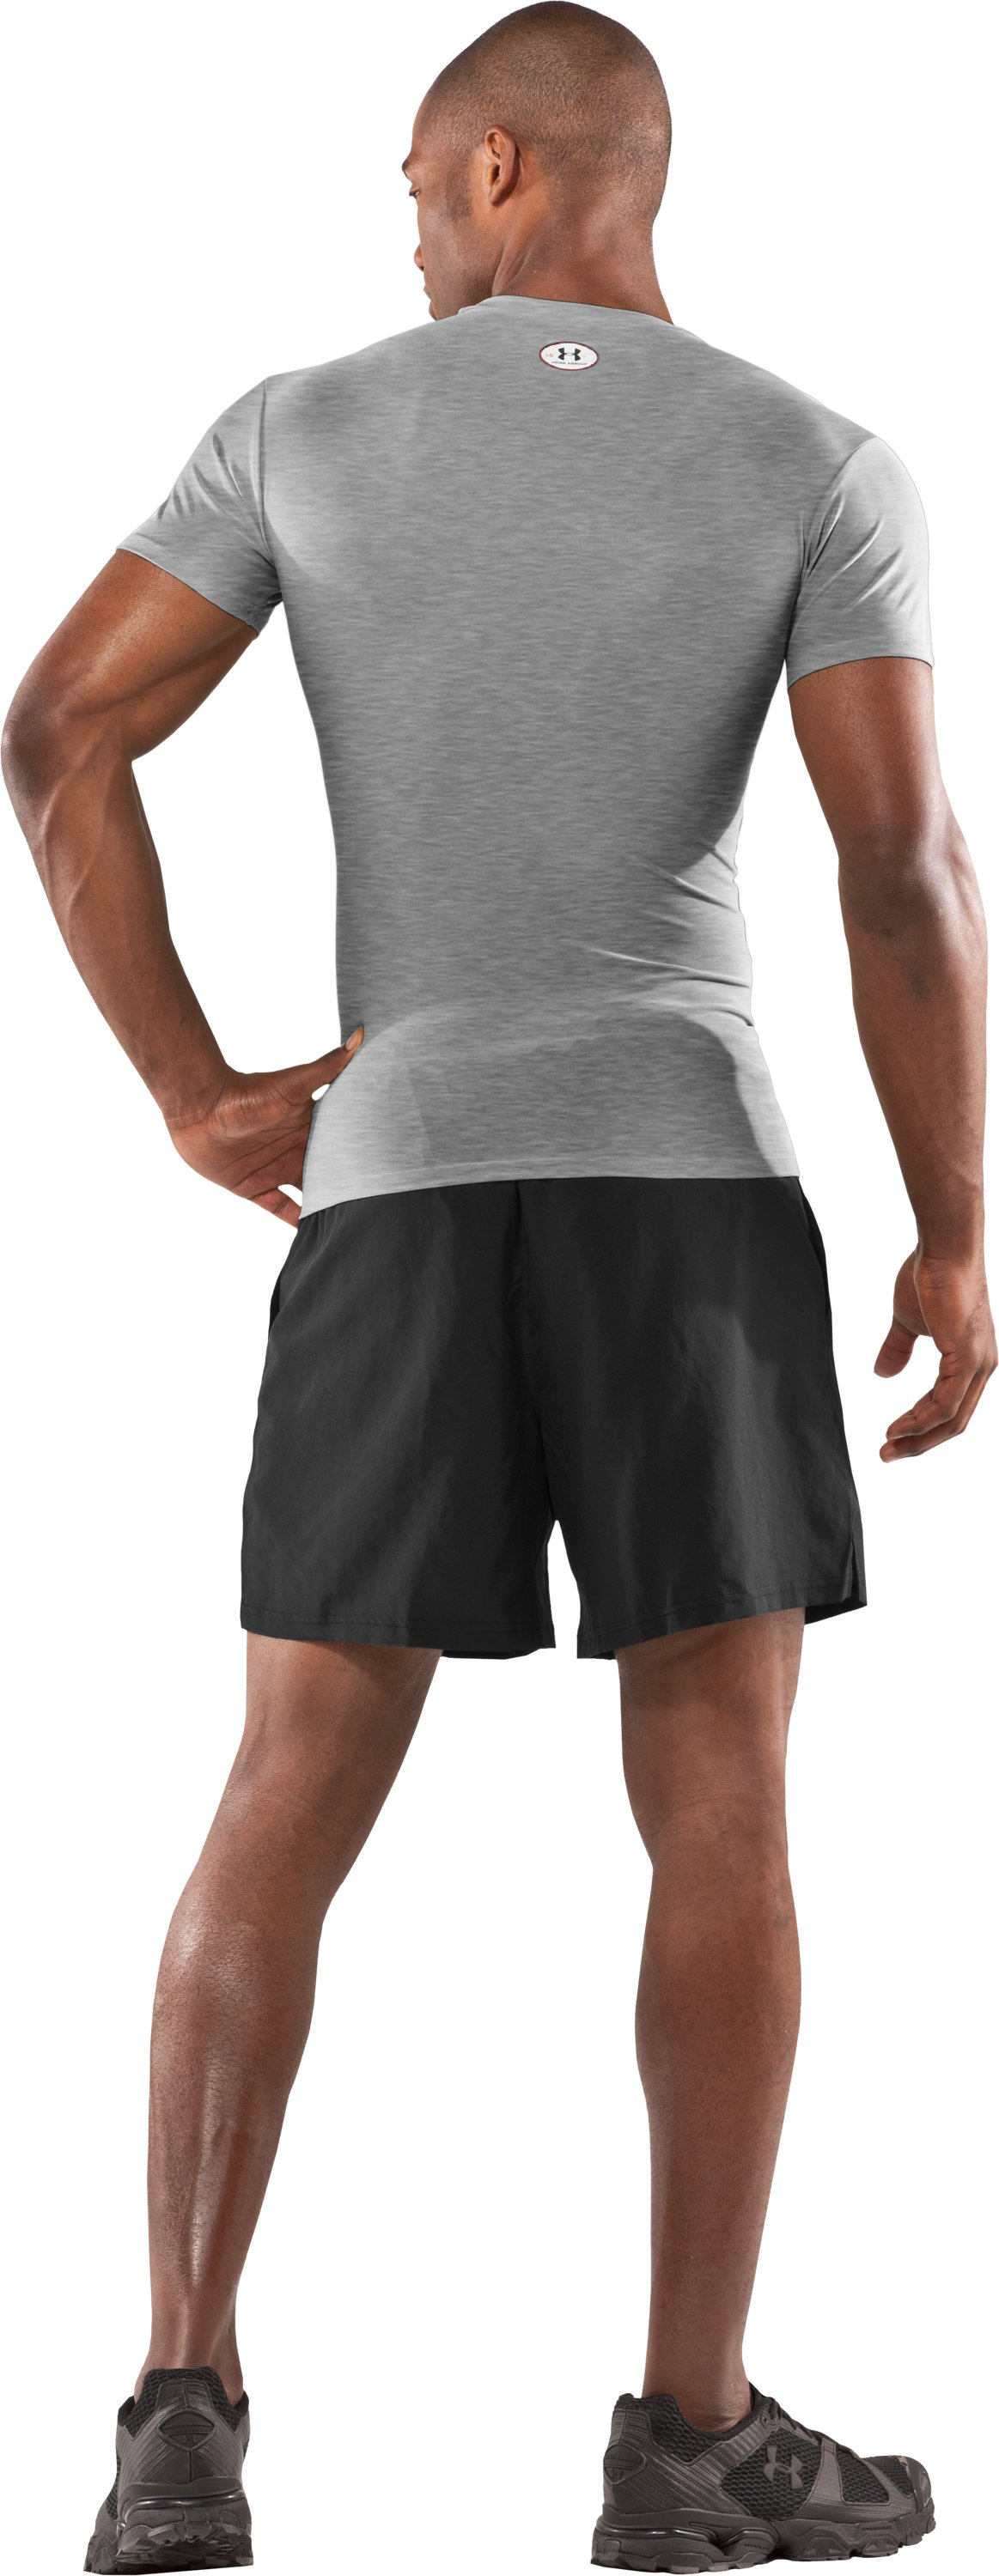 Men's HeatGear® Compression Short Sleeve T-Shirt, Medium Gray Heather, Back